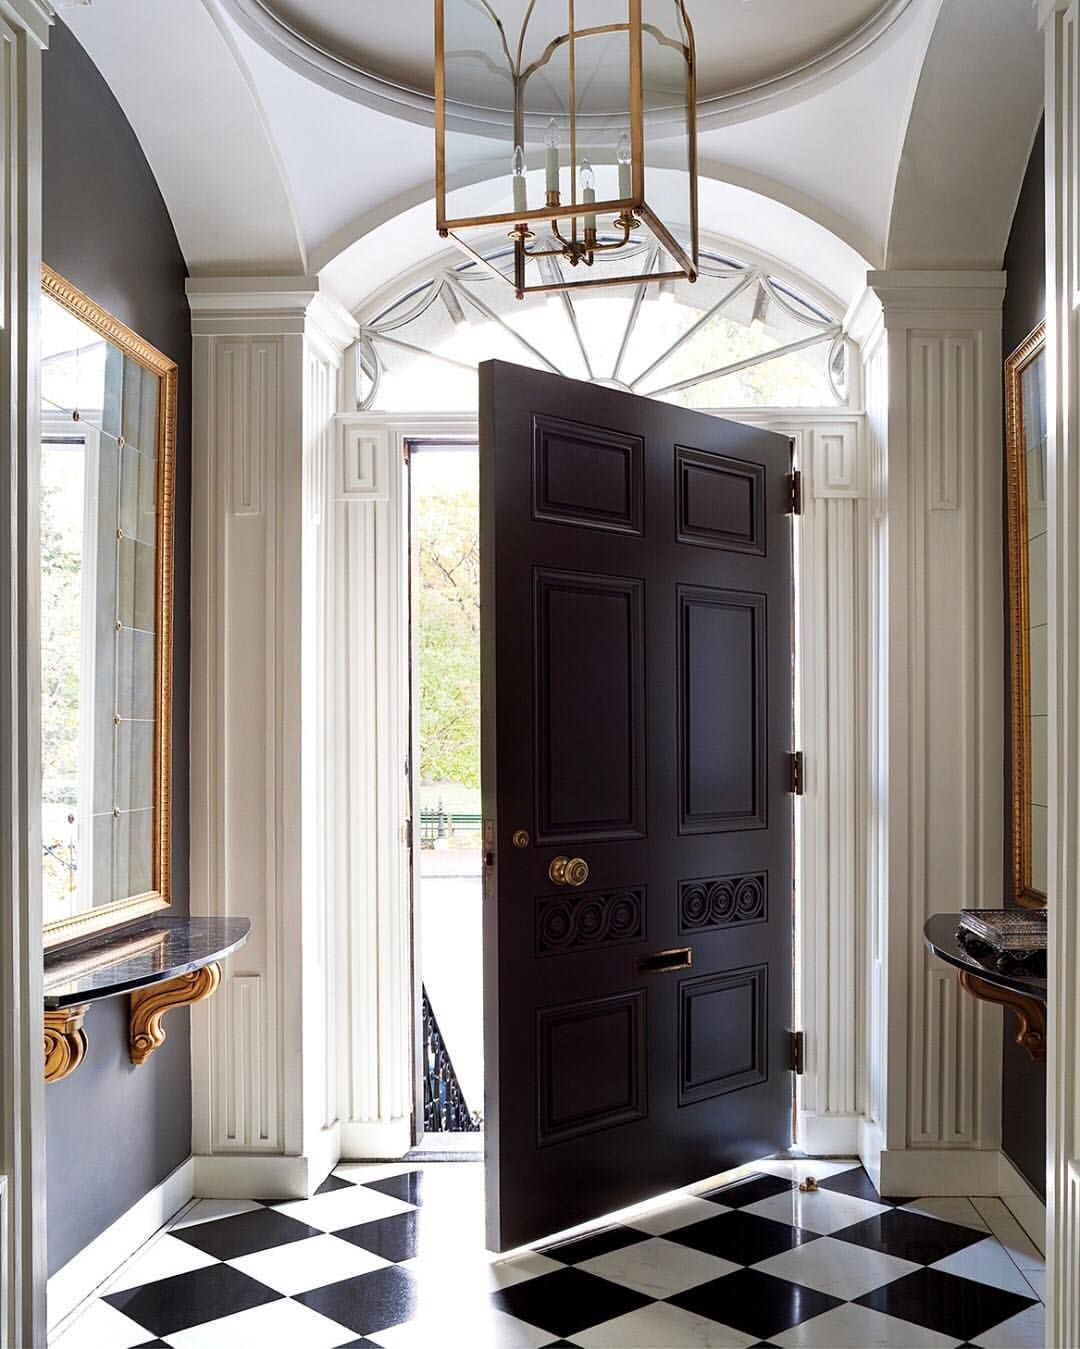 """536 Likes, 5 Comments - Williams Sonoma Home (@wshome) on Instagram: """"A gorgeous entrance into the weekend. 😍 Design by Siemasko + Verbridge"""""""